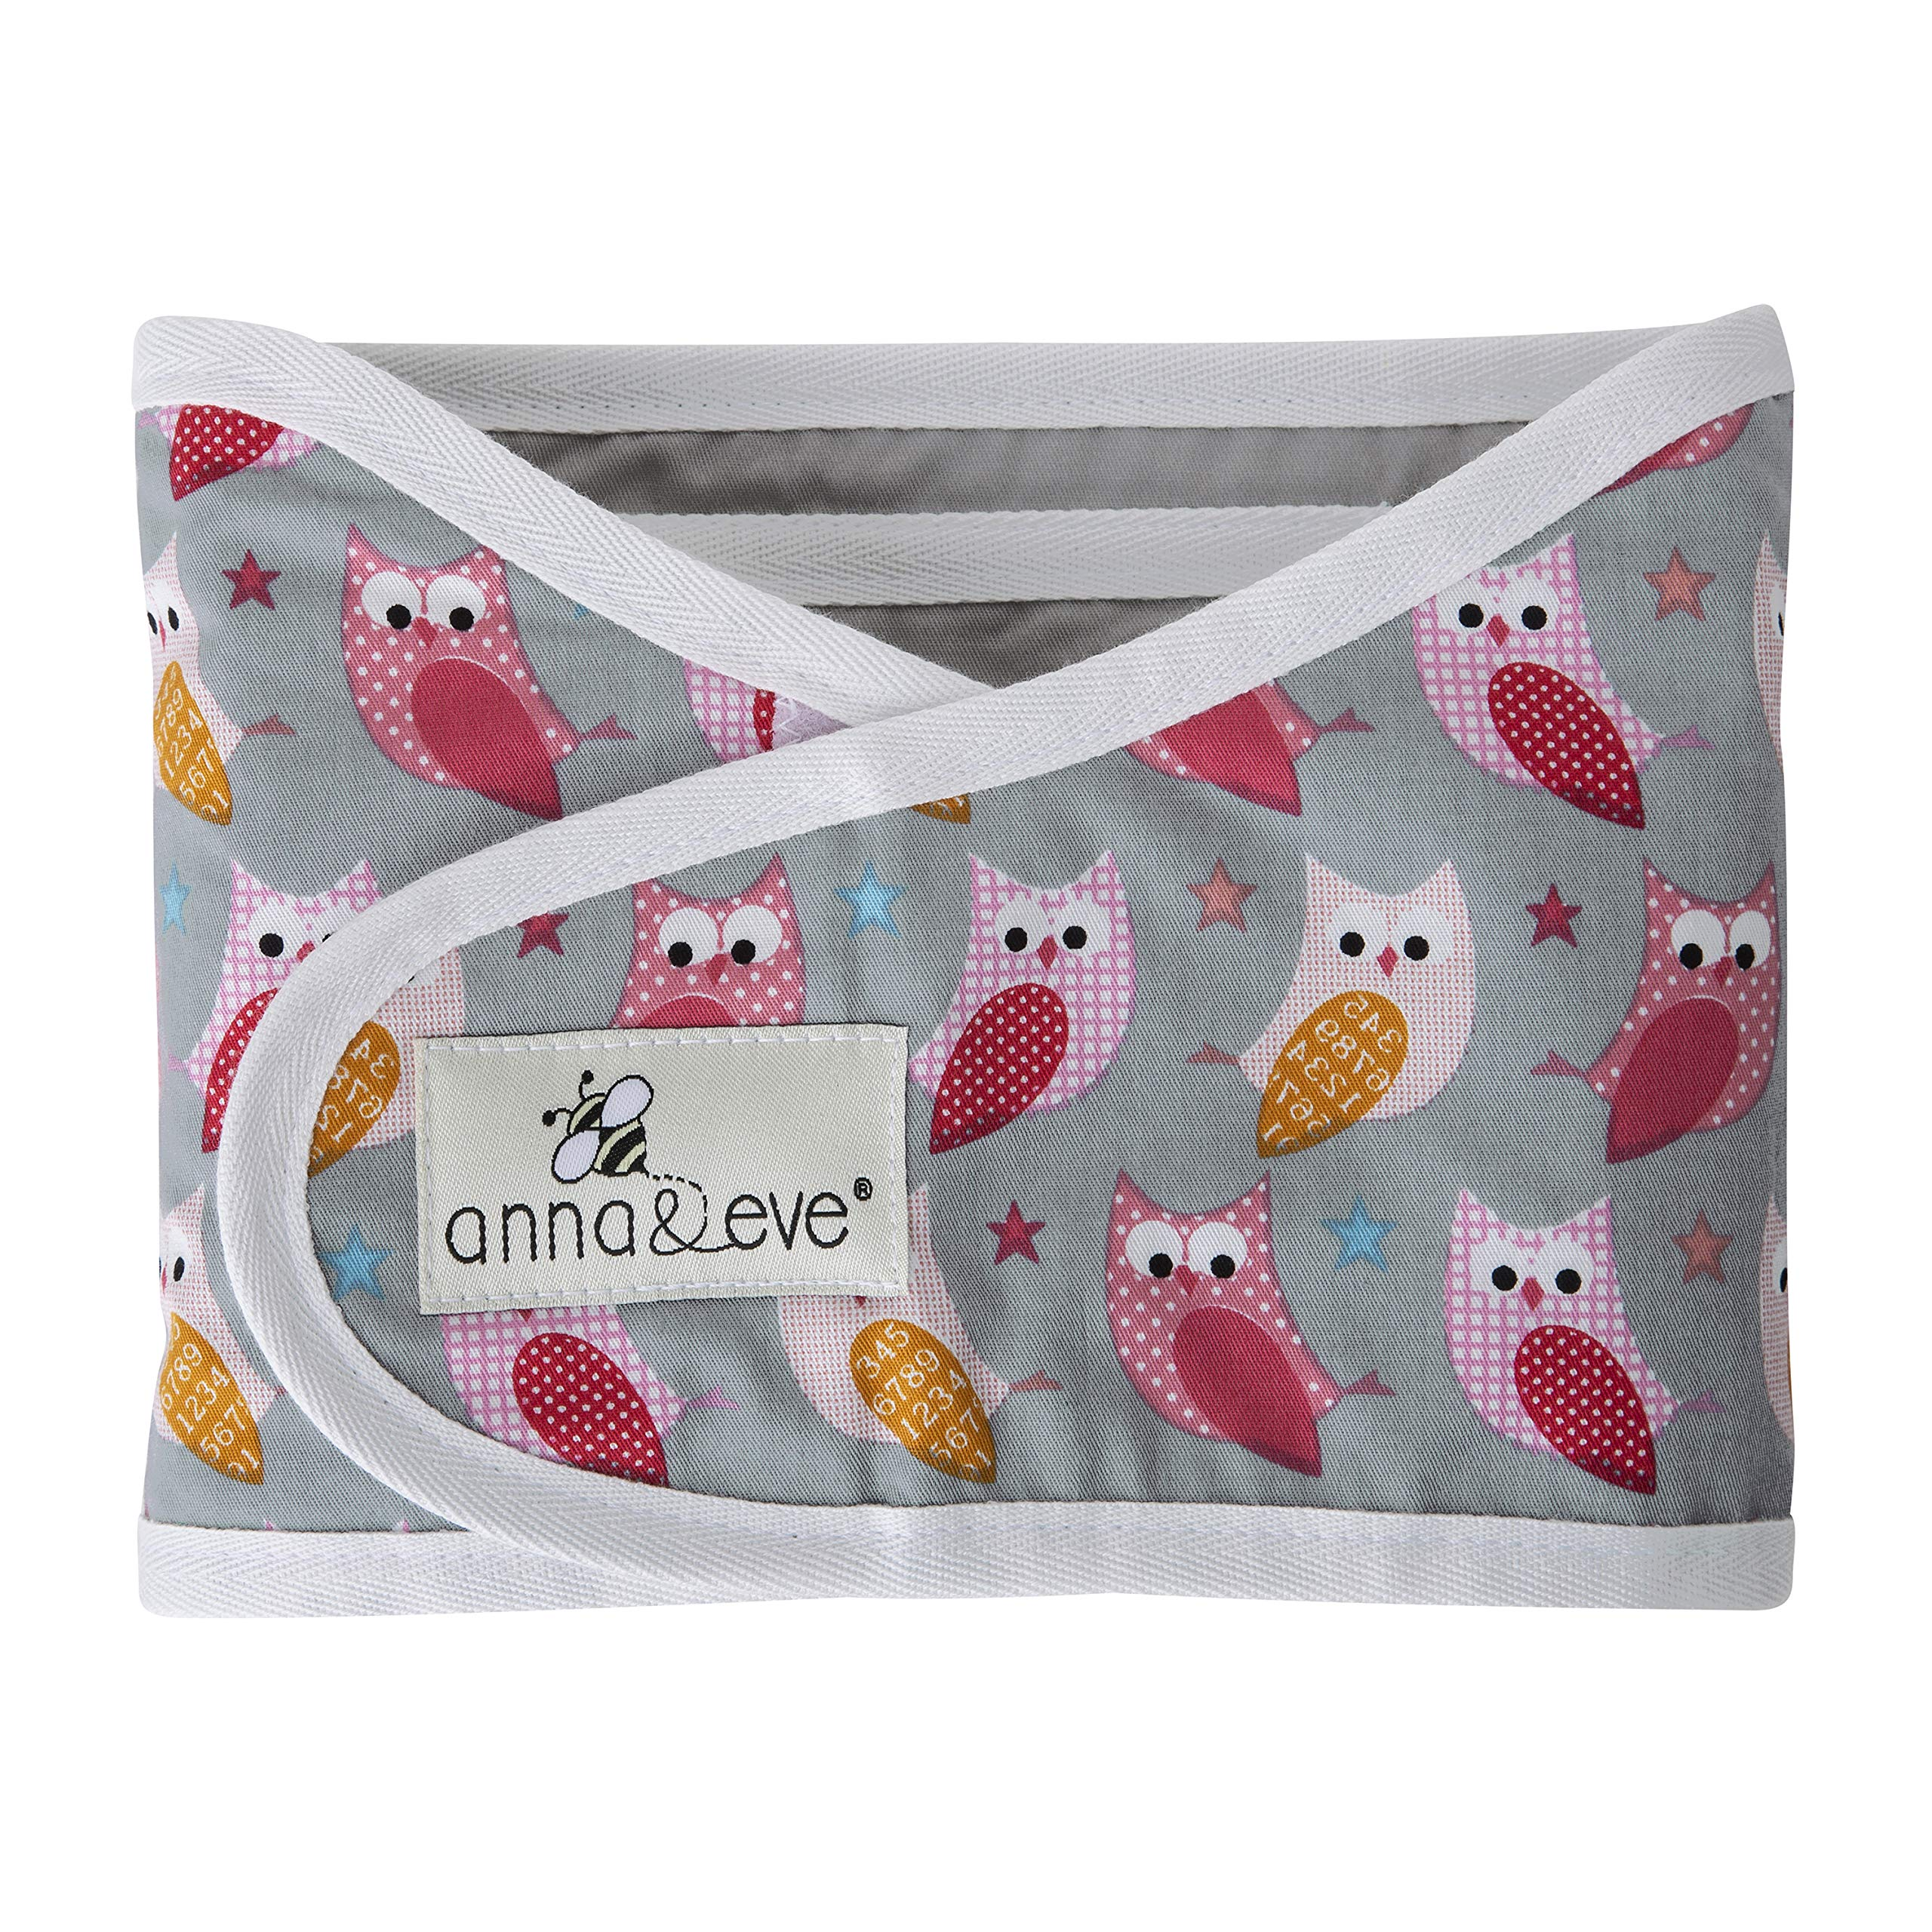 Anna & Eve - Baby Swaddle Strap, Adjustable Arms Only Wrap for Safe Sleeping - Small Size Fits Chest 13.5 to 17, Owls Grey/Pink